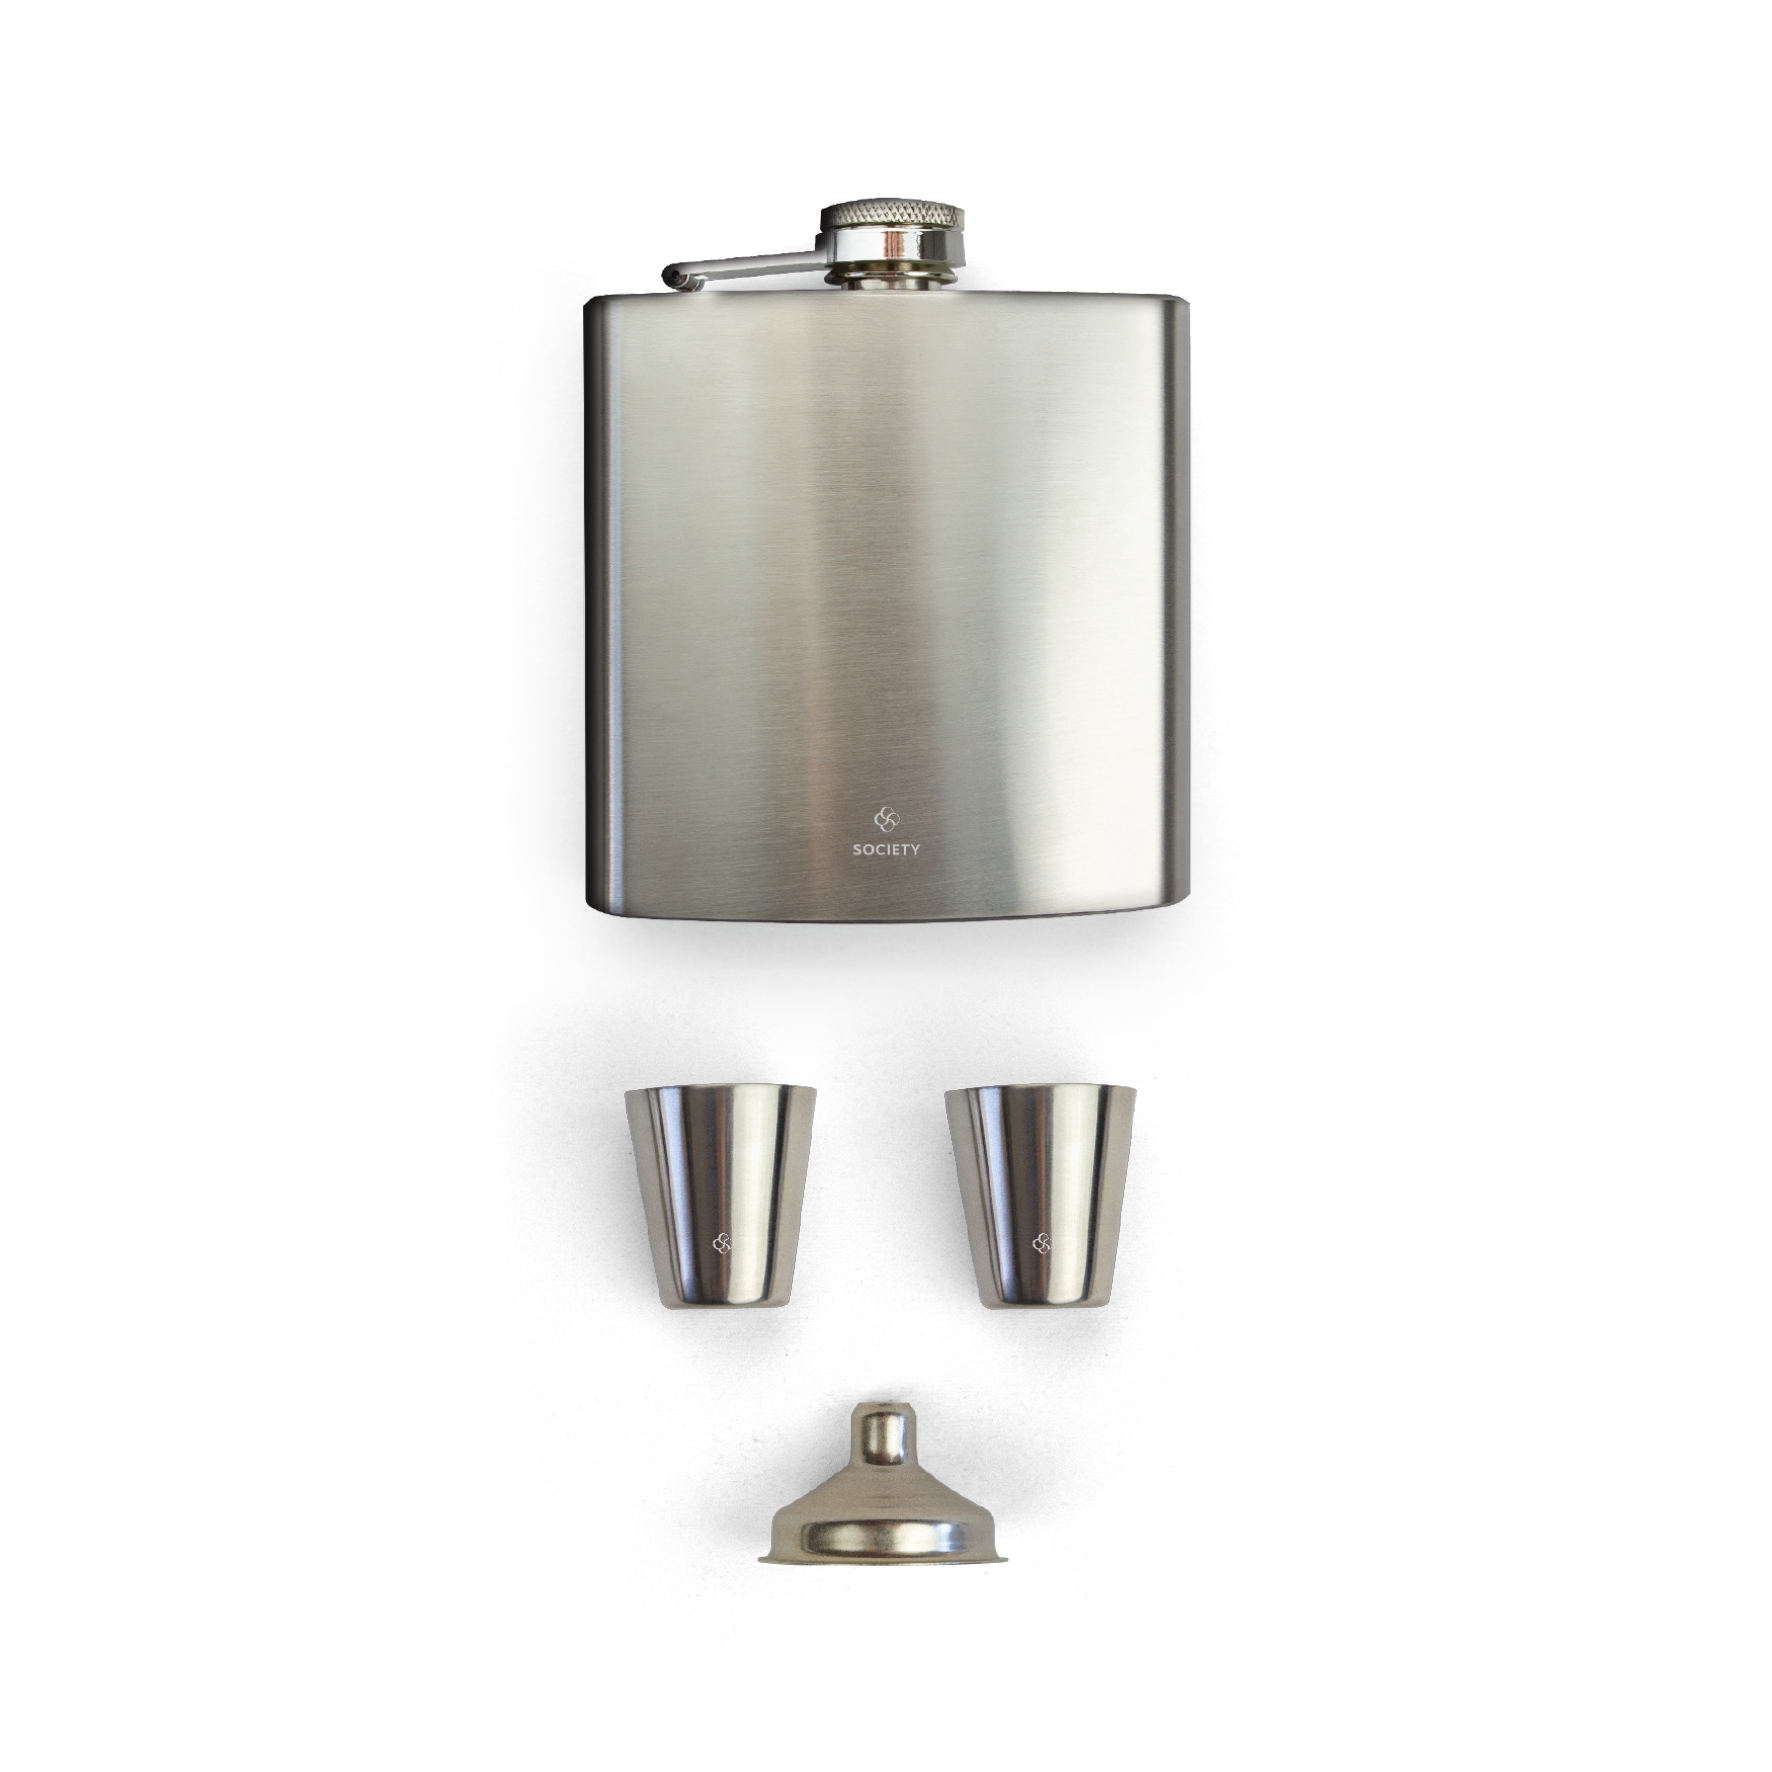 Society Paris - Stainless Steel Flask and Shotglass Set